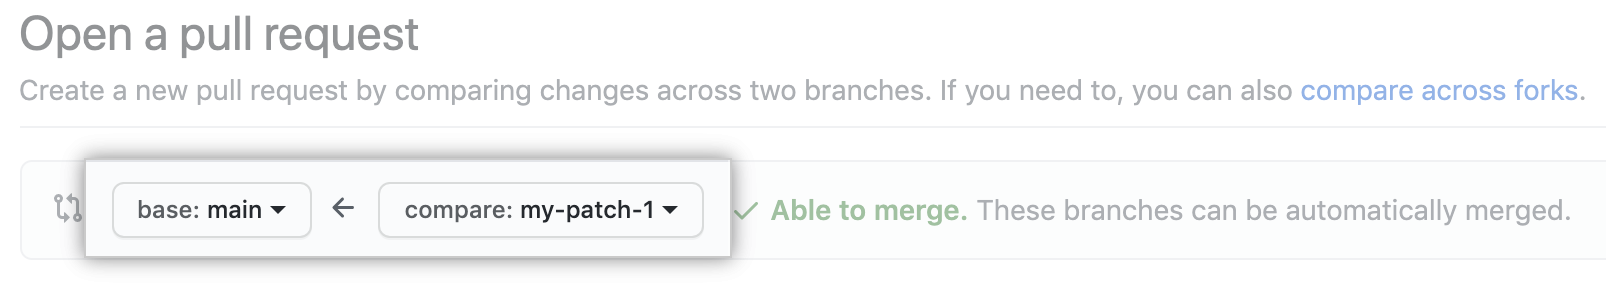 pull request image